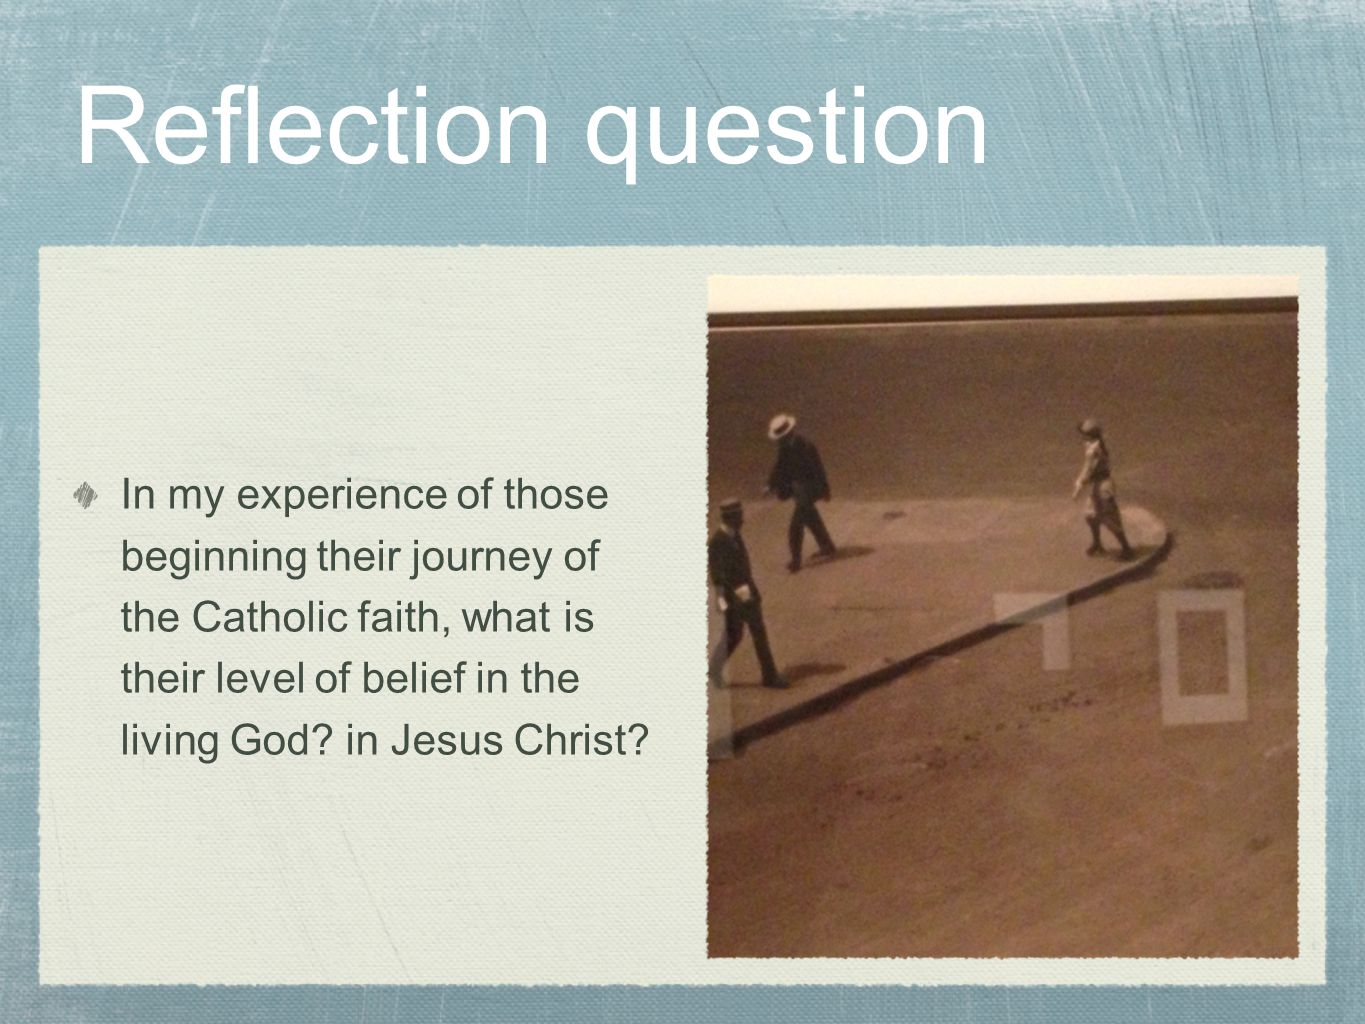 In my experience of those beginning their journey of the Catholic faith, what is their level of belief in the living God.